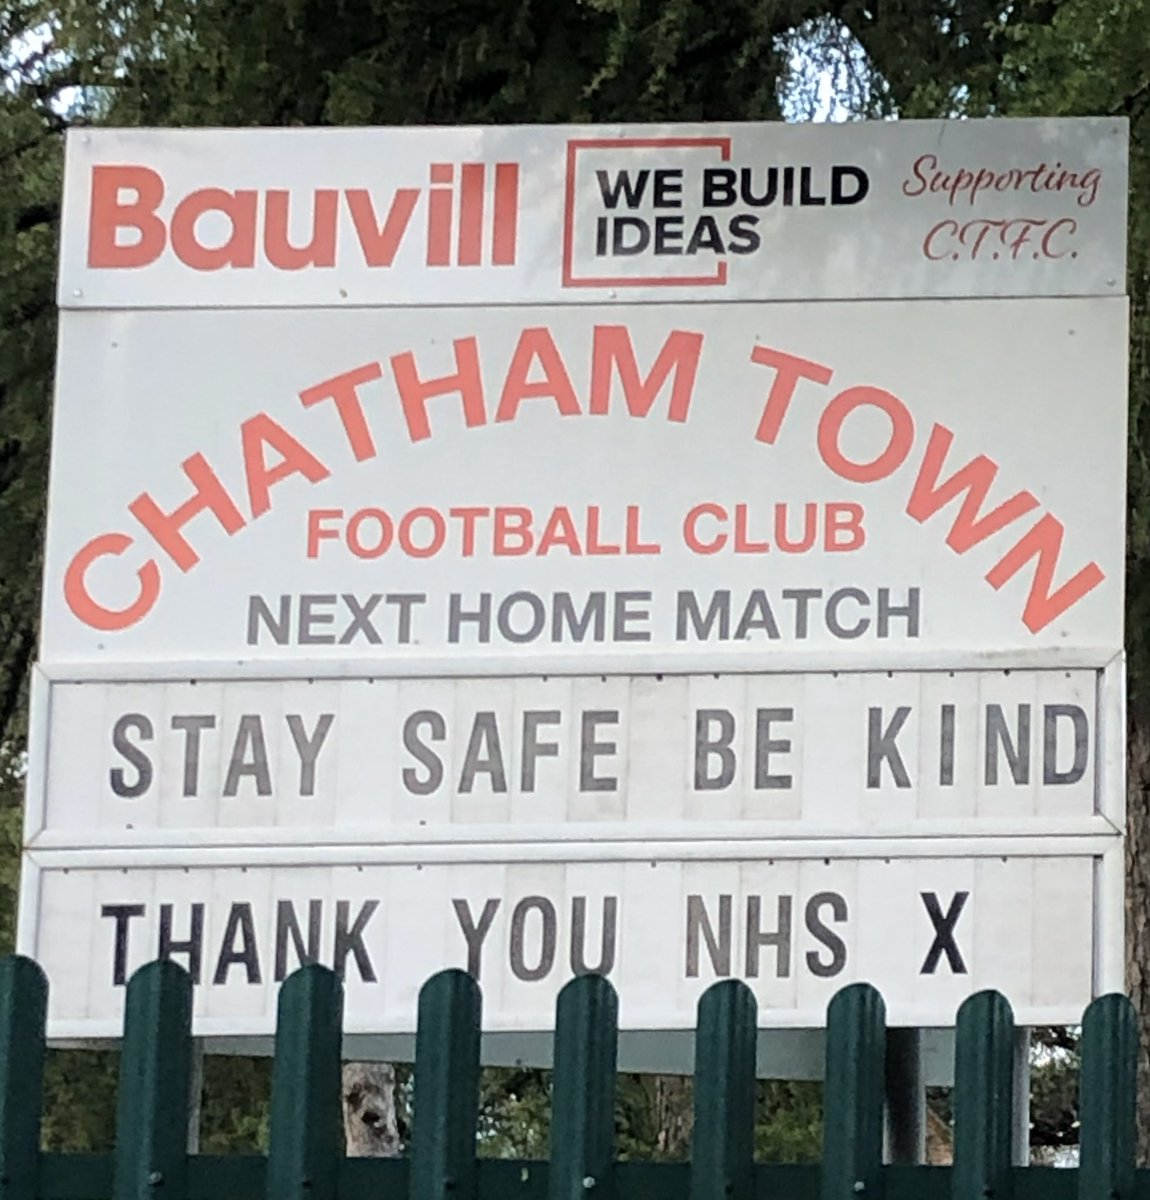 Well played @ChathamTownFC 👏 https://t.co/ggxF68oOms